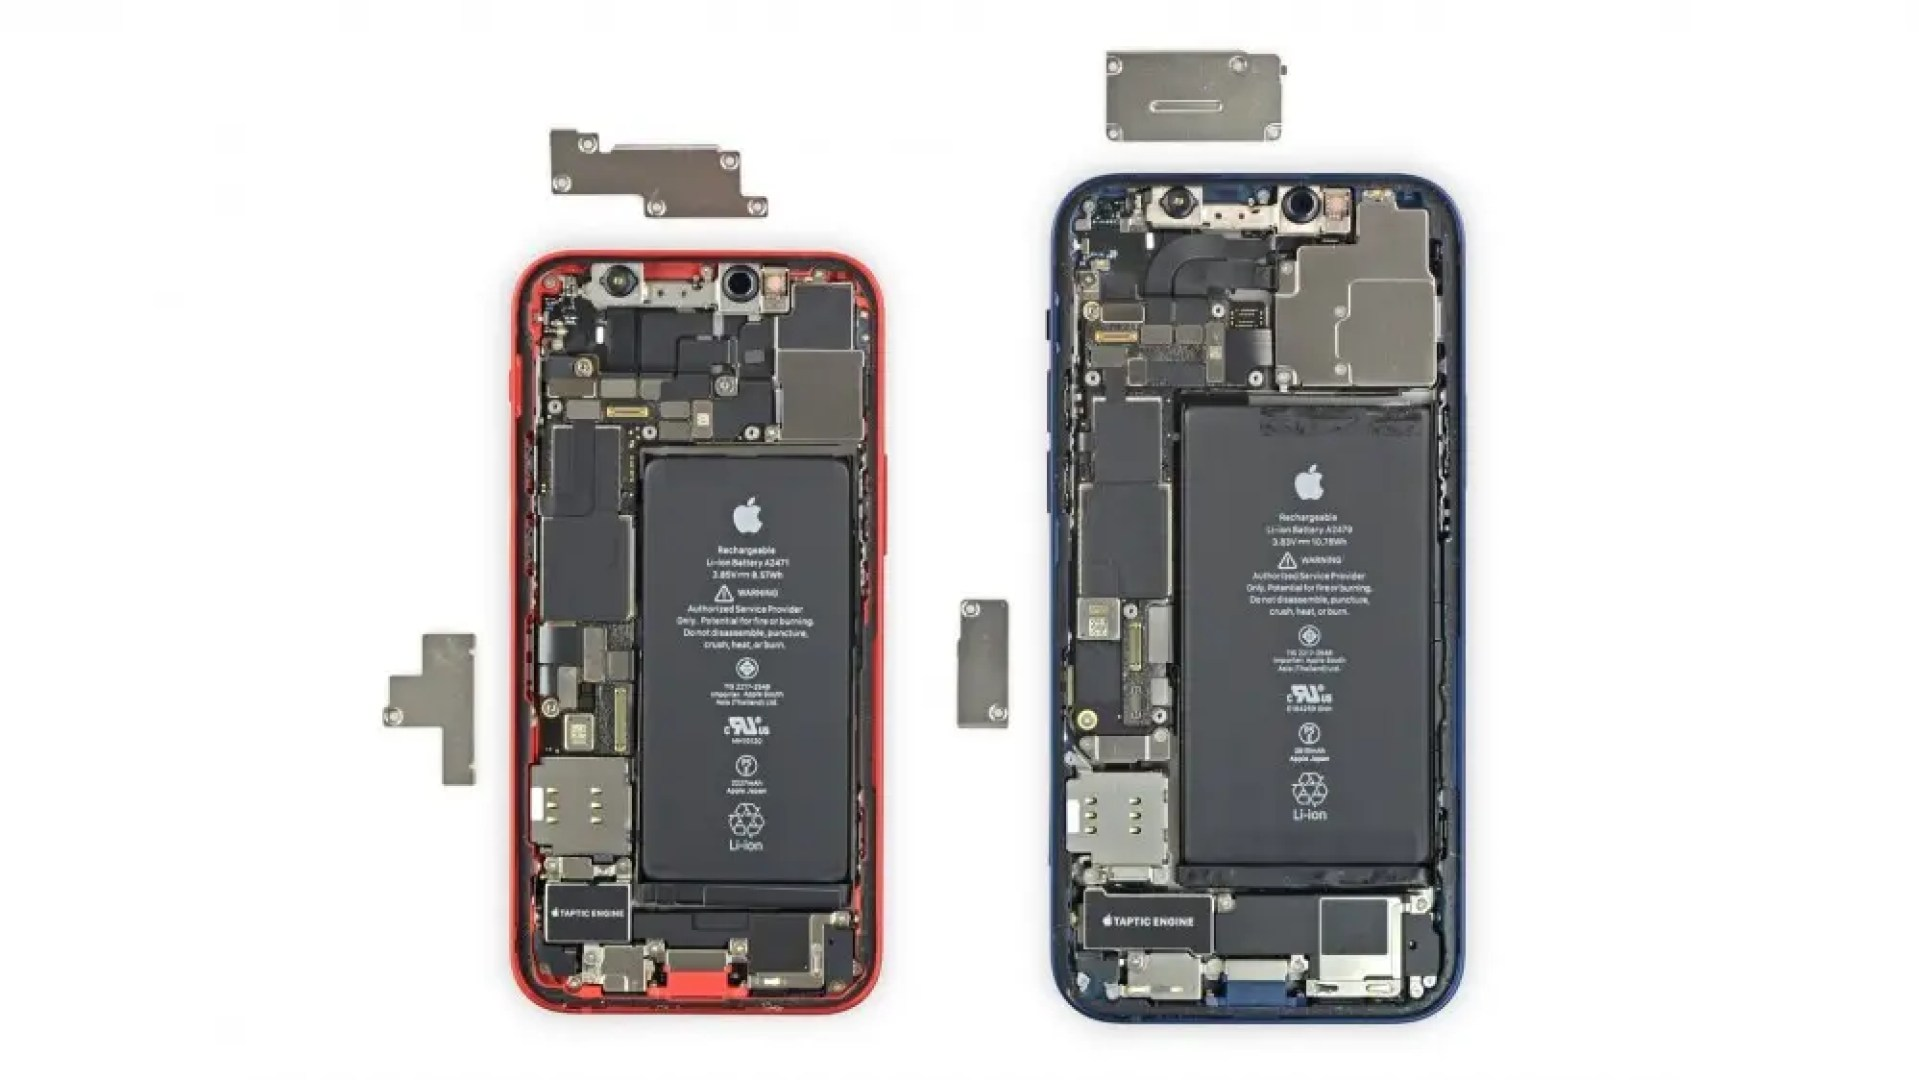 The iPhone 12 Mini compared to the regular iPhone 12 with backs removed to expose the battery and boards